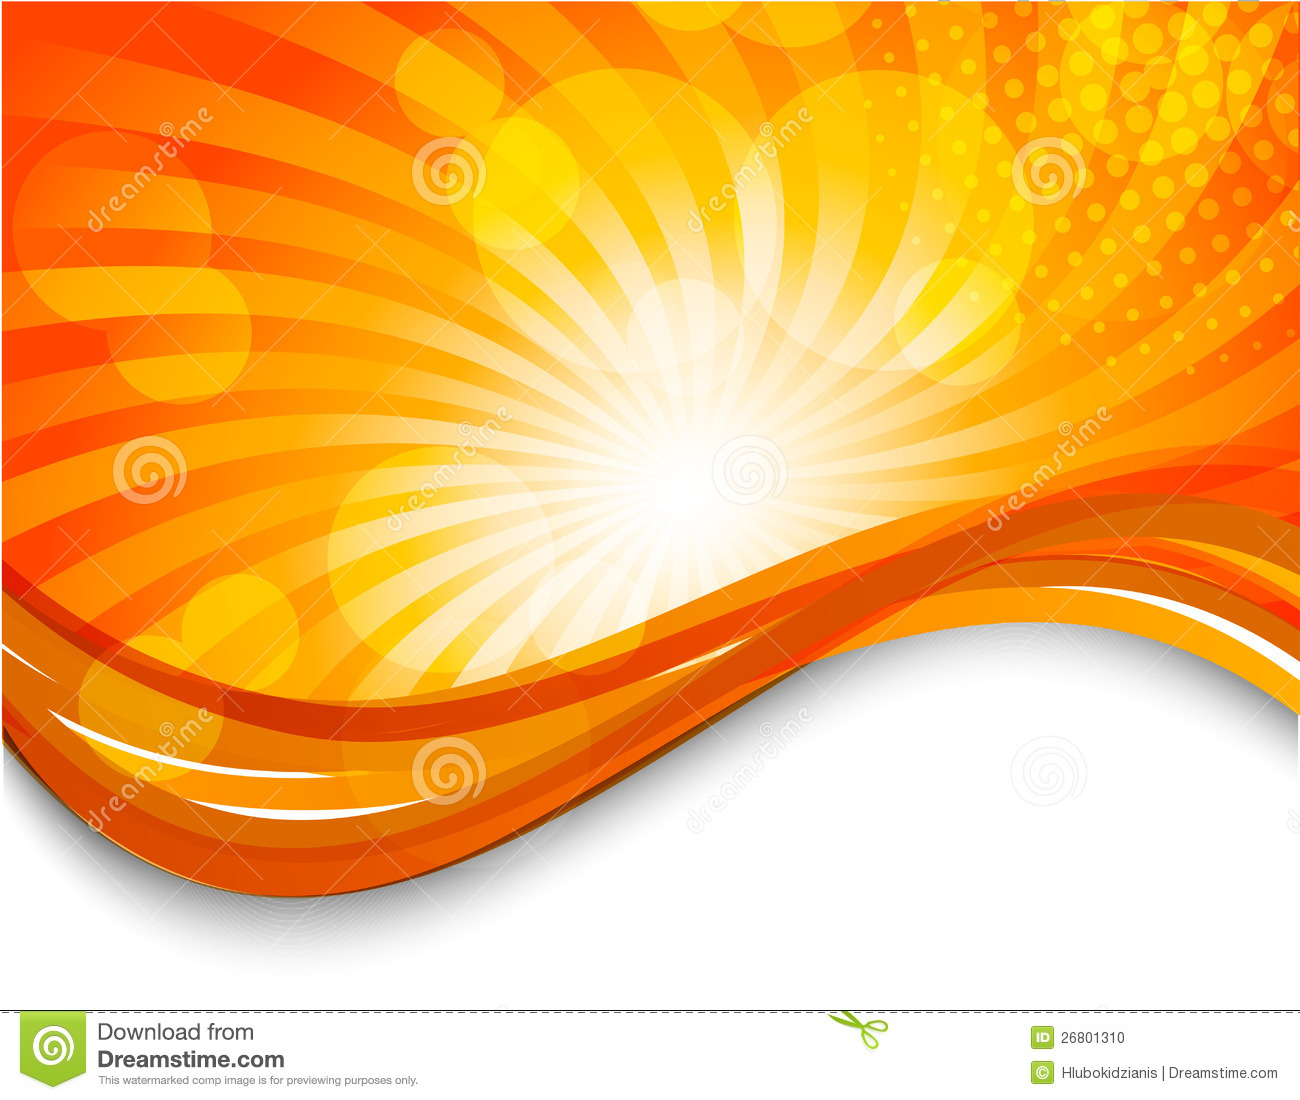 Abstract orange background stock vector Image of graphic 26801310